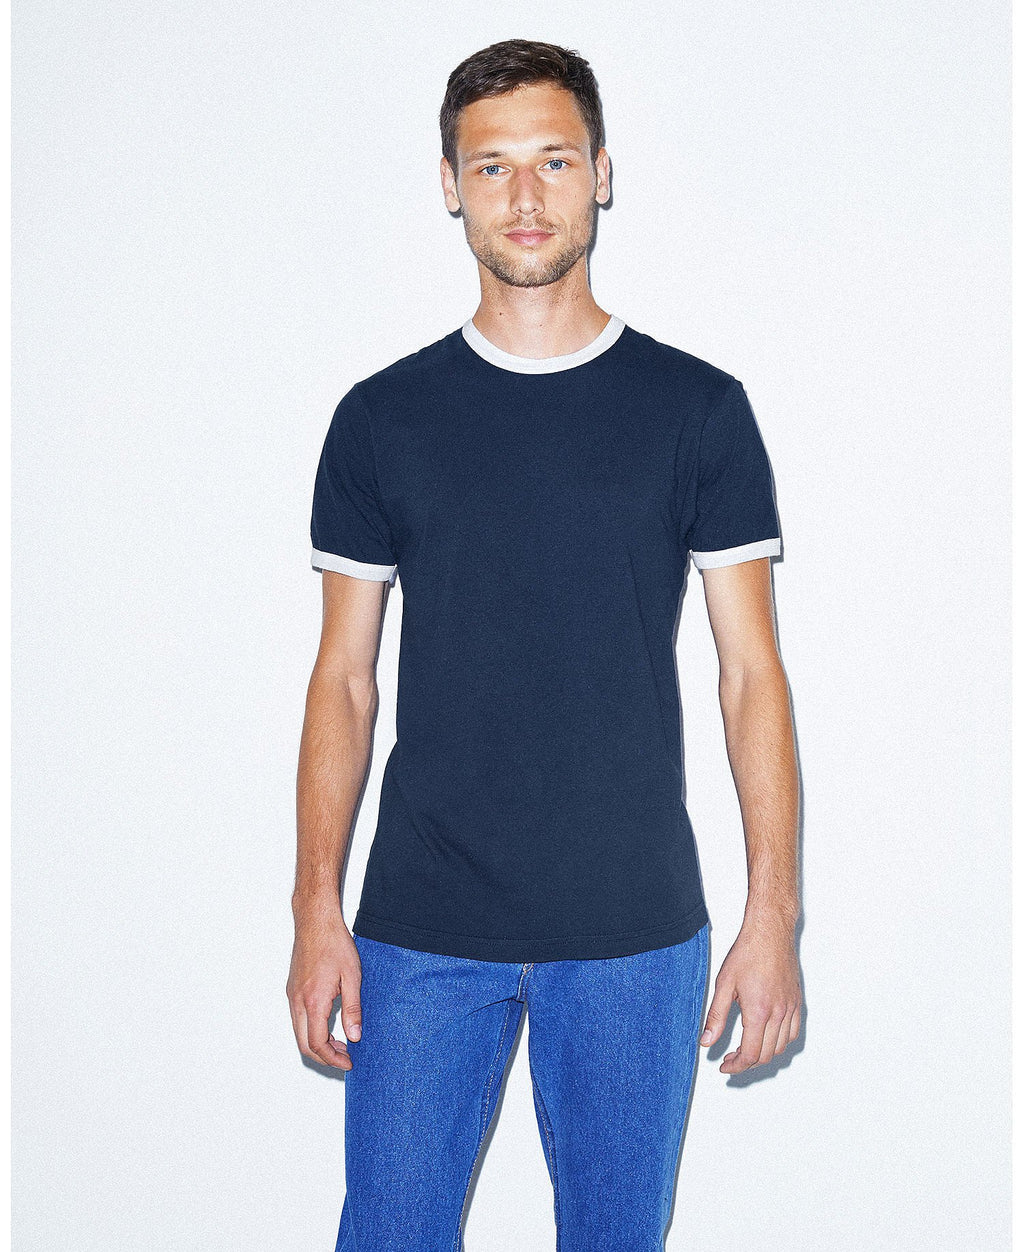 American Apparel Unisex Fine Jersey Ringer Tee